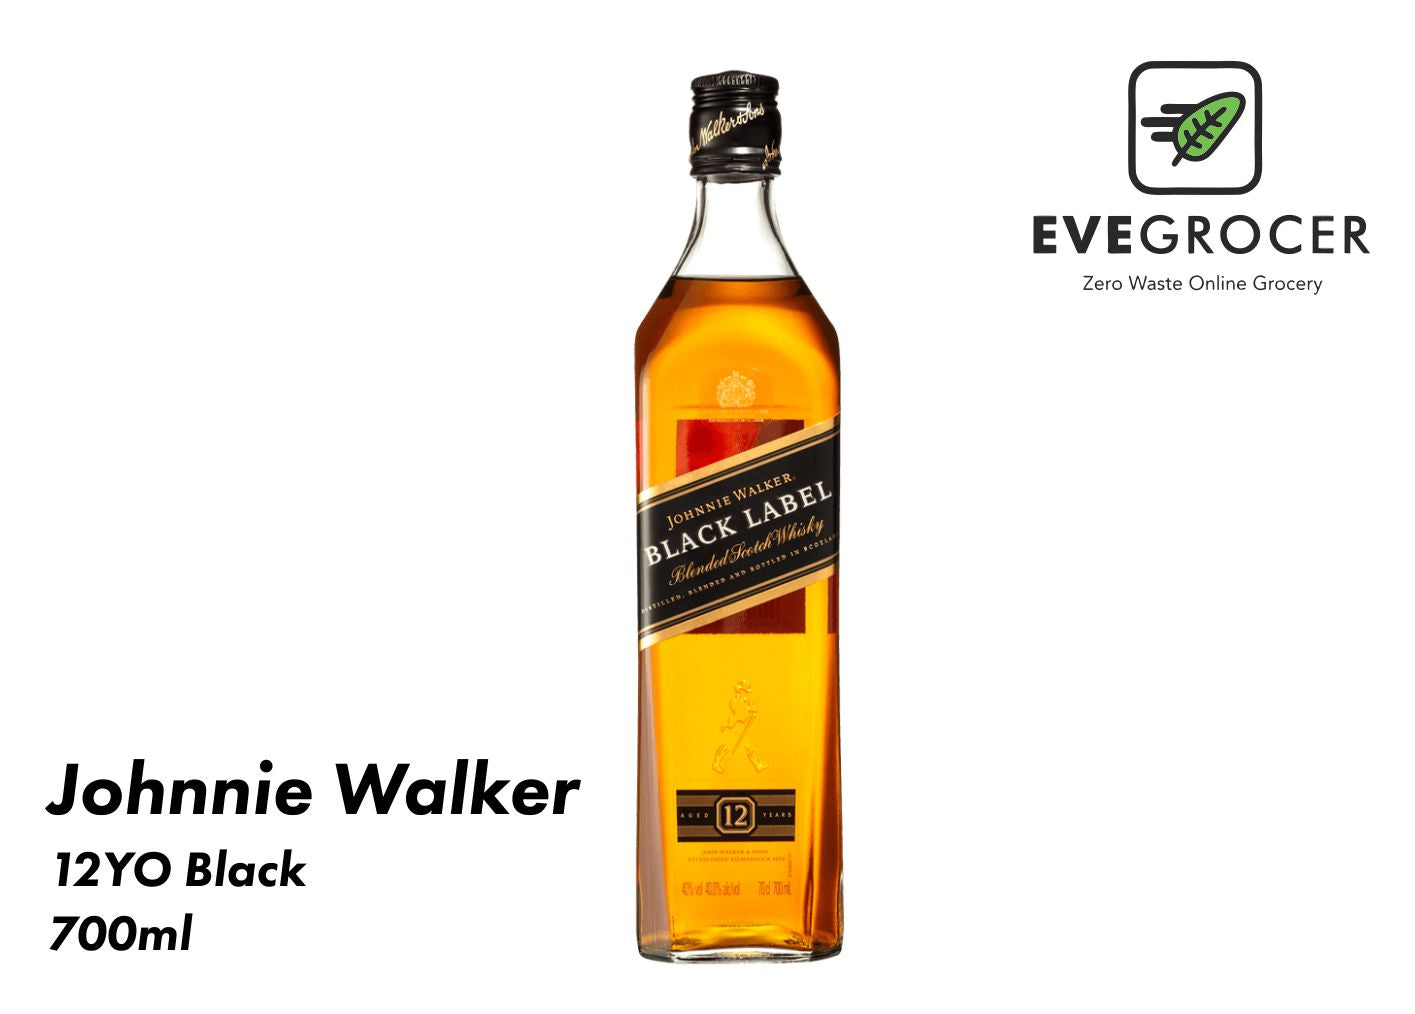 Johnnie Walker 12YO Black Label